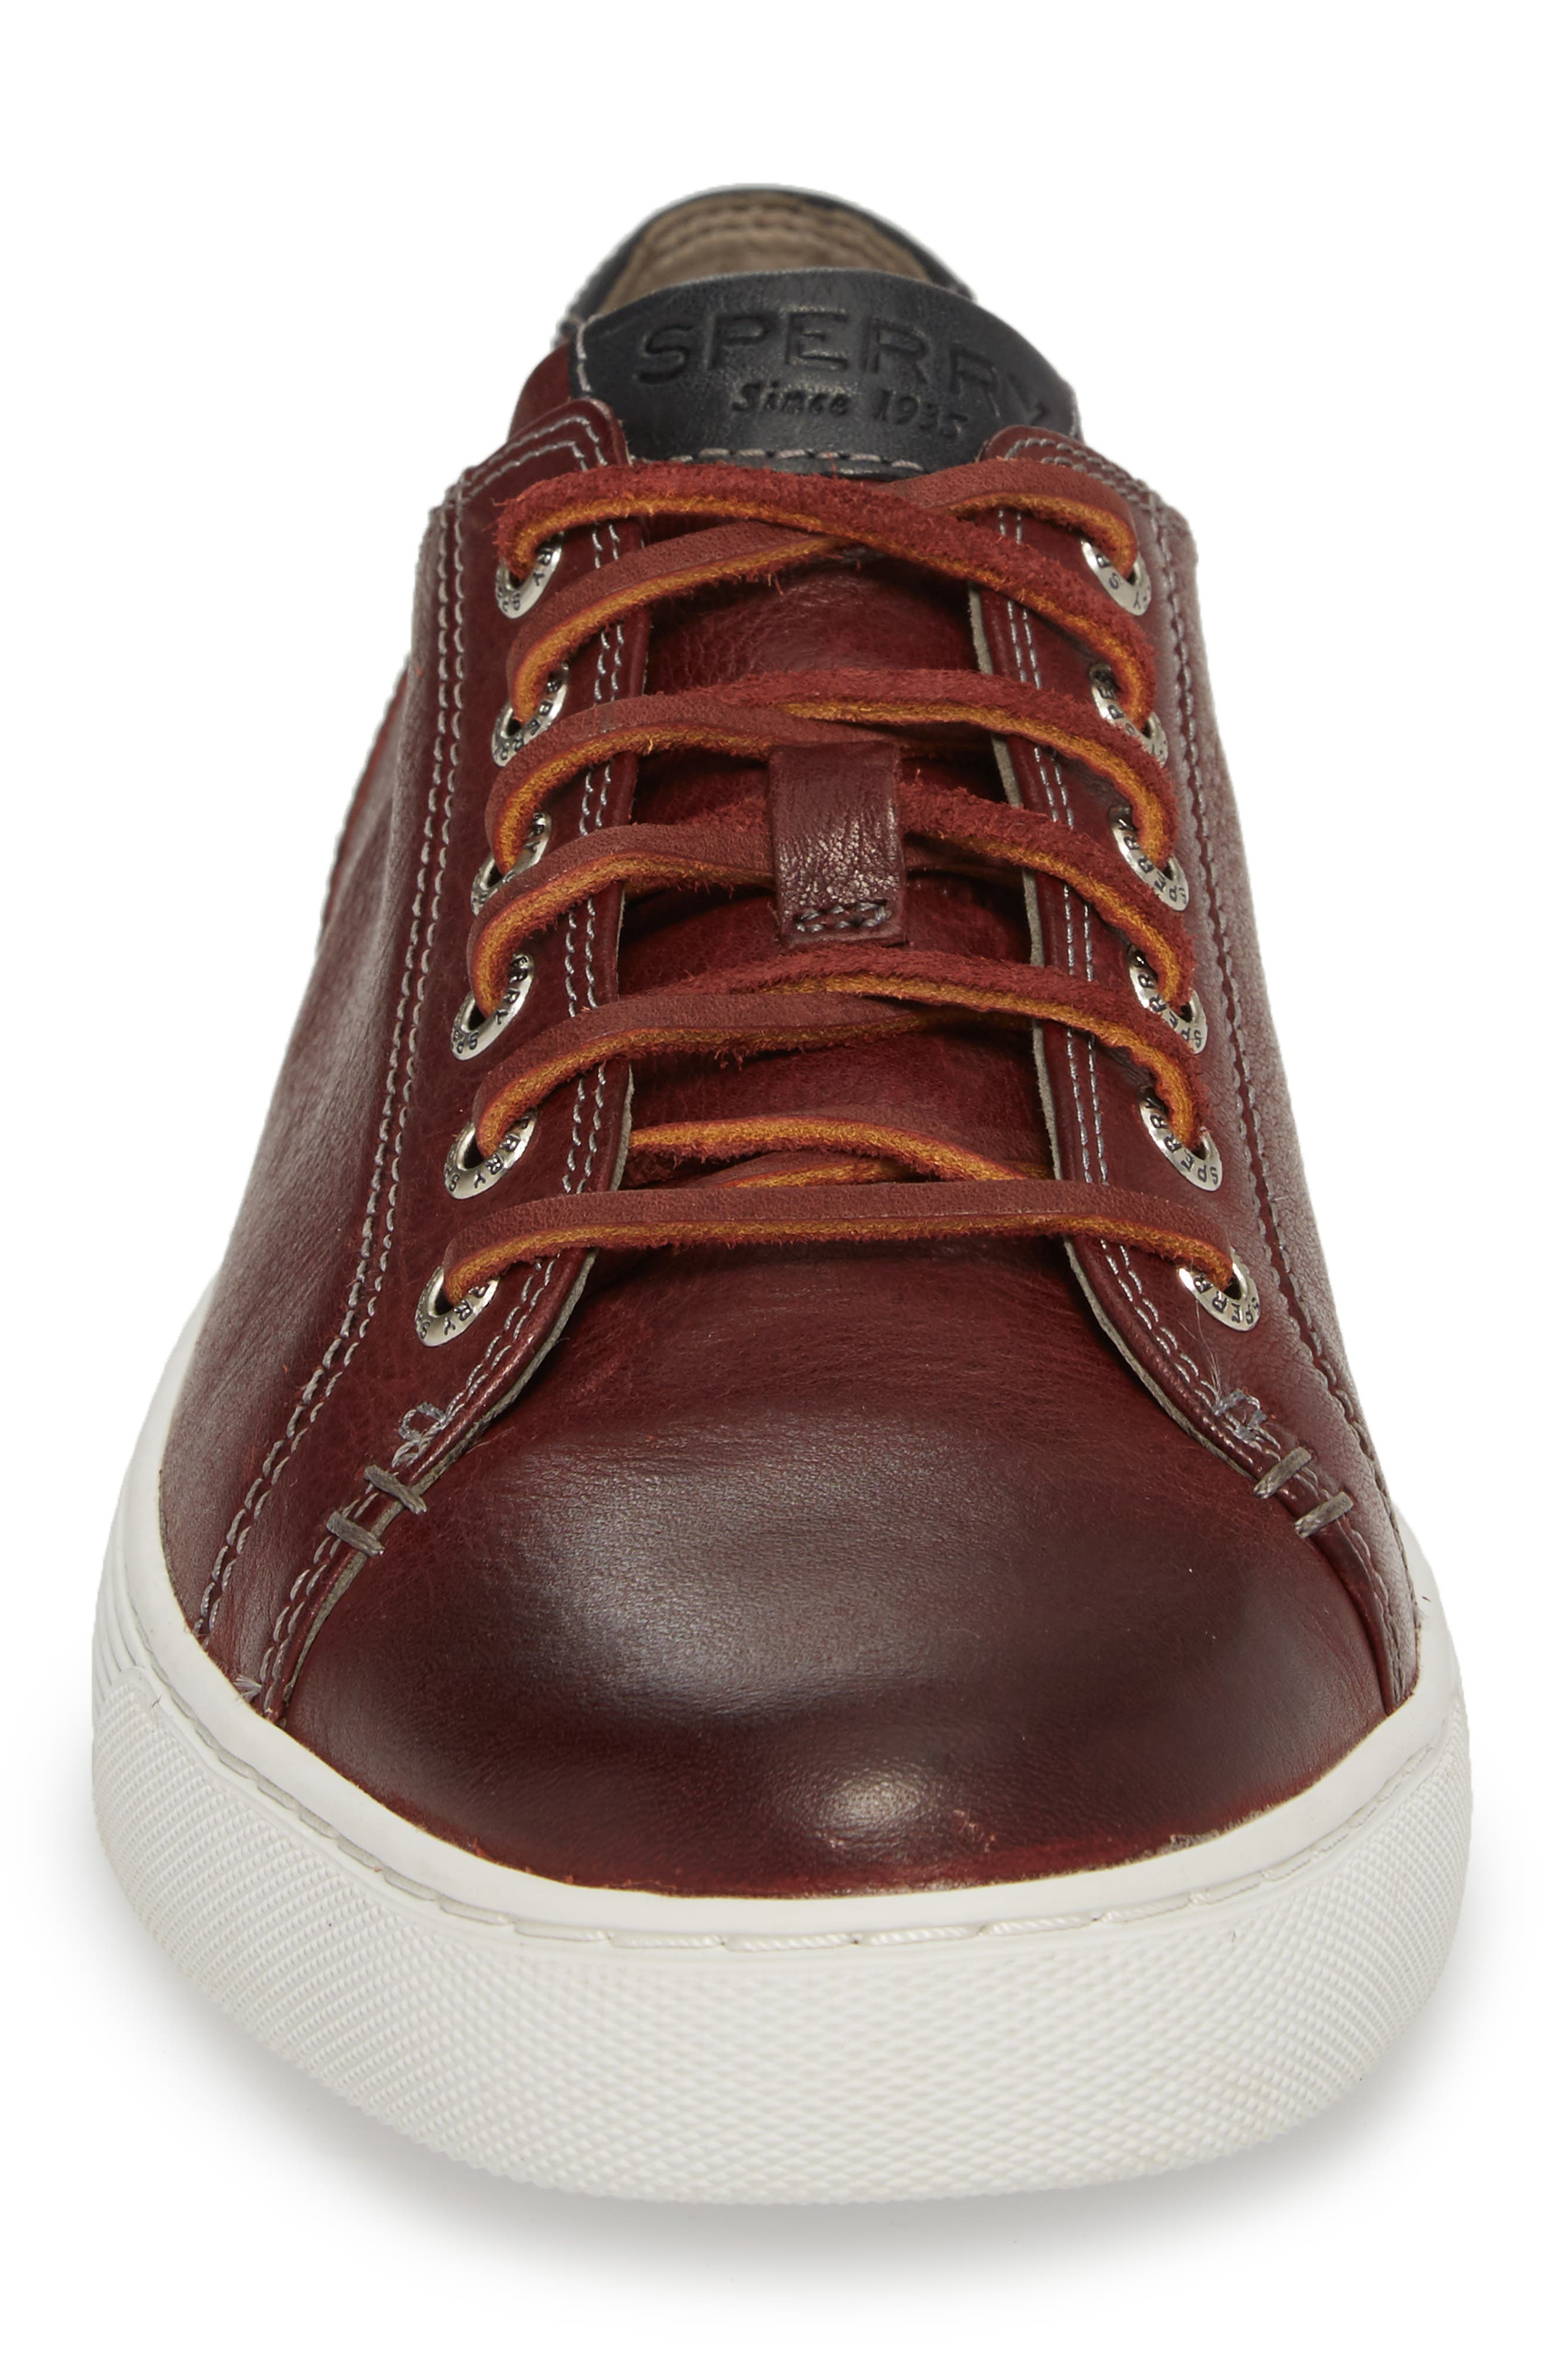 Gold Cup Sport Sneaker,                             Alternate thumbnail 7, color,